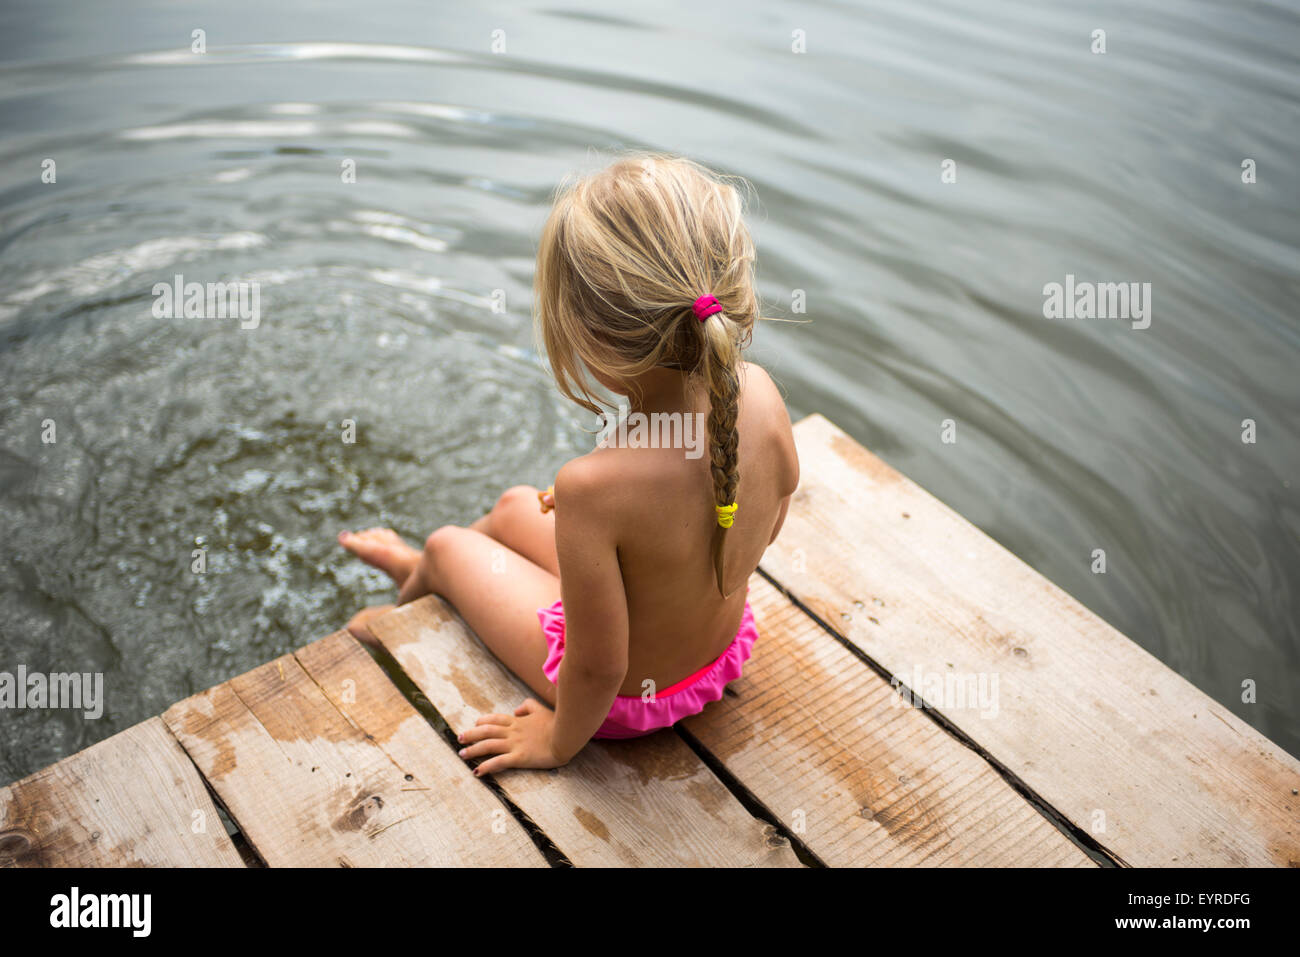 Rear view of child blond girl sitting on pier looking at view of pond with her feet in the water - Stock Image